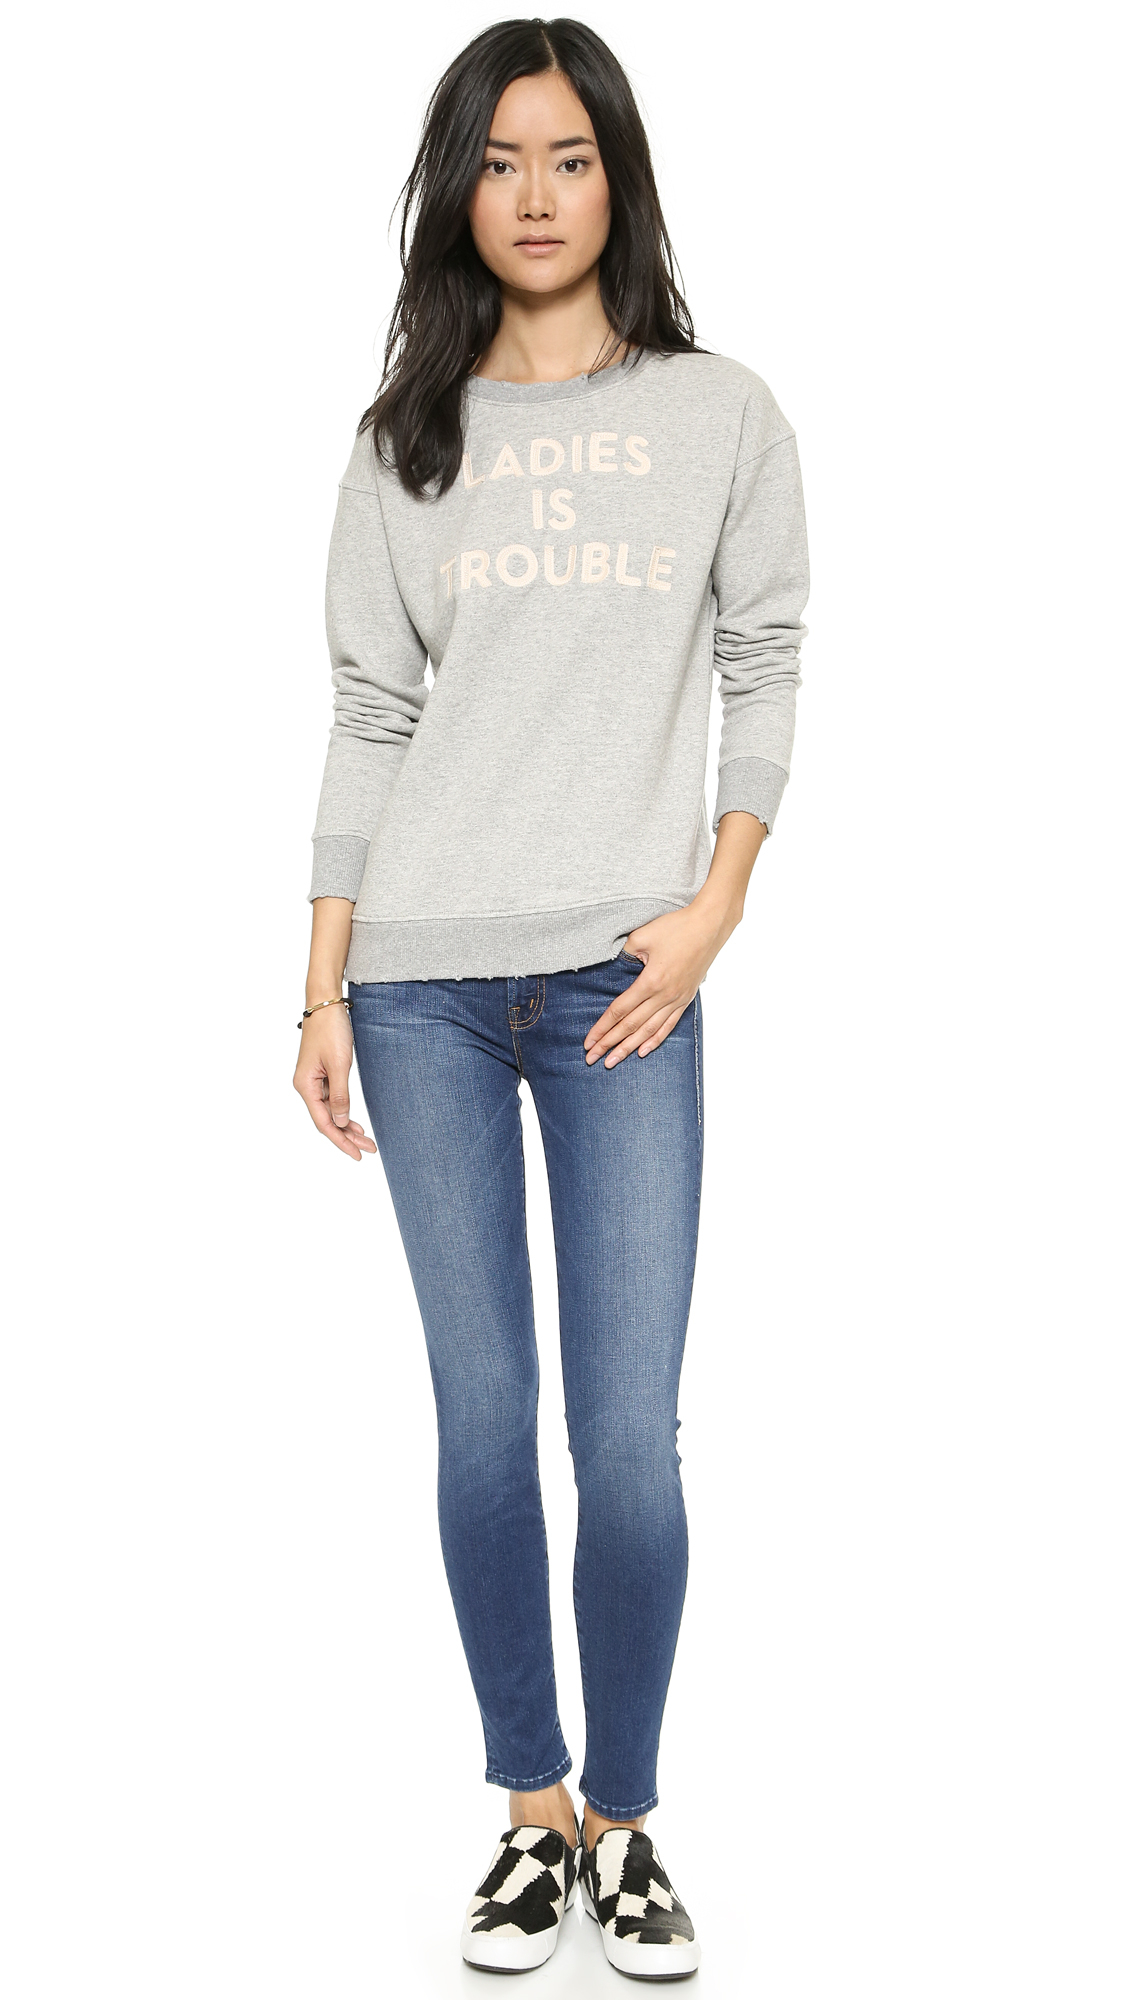 The Charmer Pages Lisa Kudrow For More: Mother The Charmer Skinny Jeans